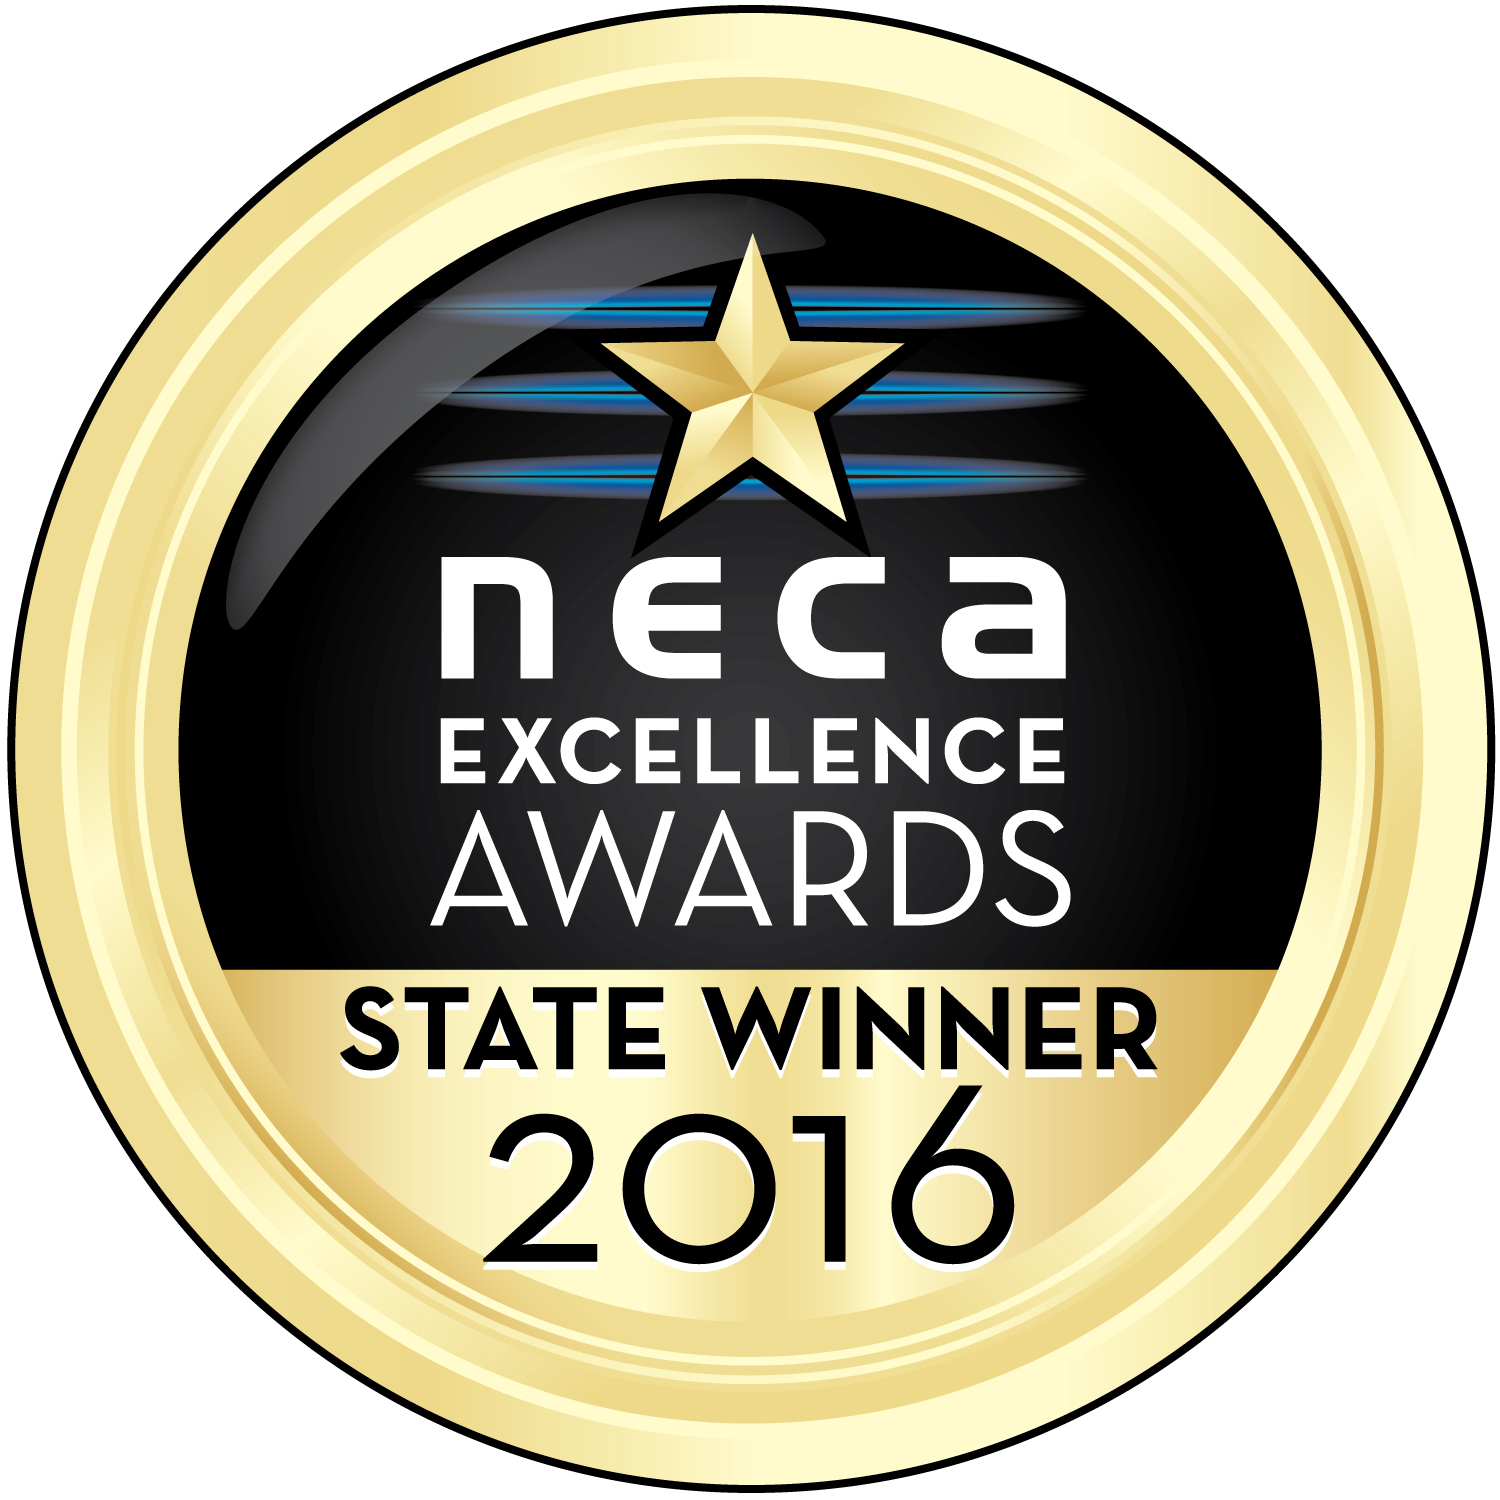 NECA_GoldAwardMedal_2016_EXCELLENCE_StateWinner